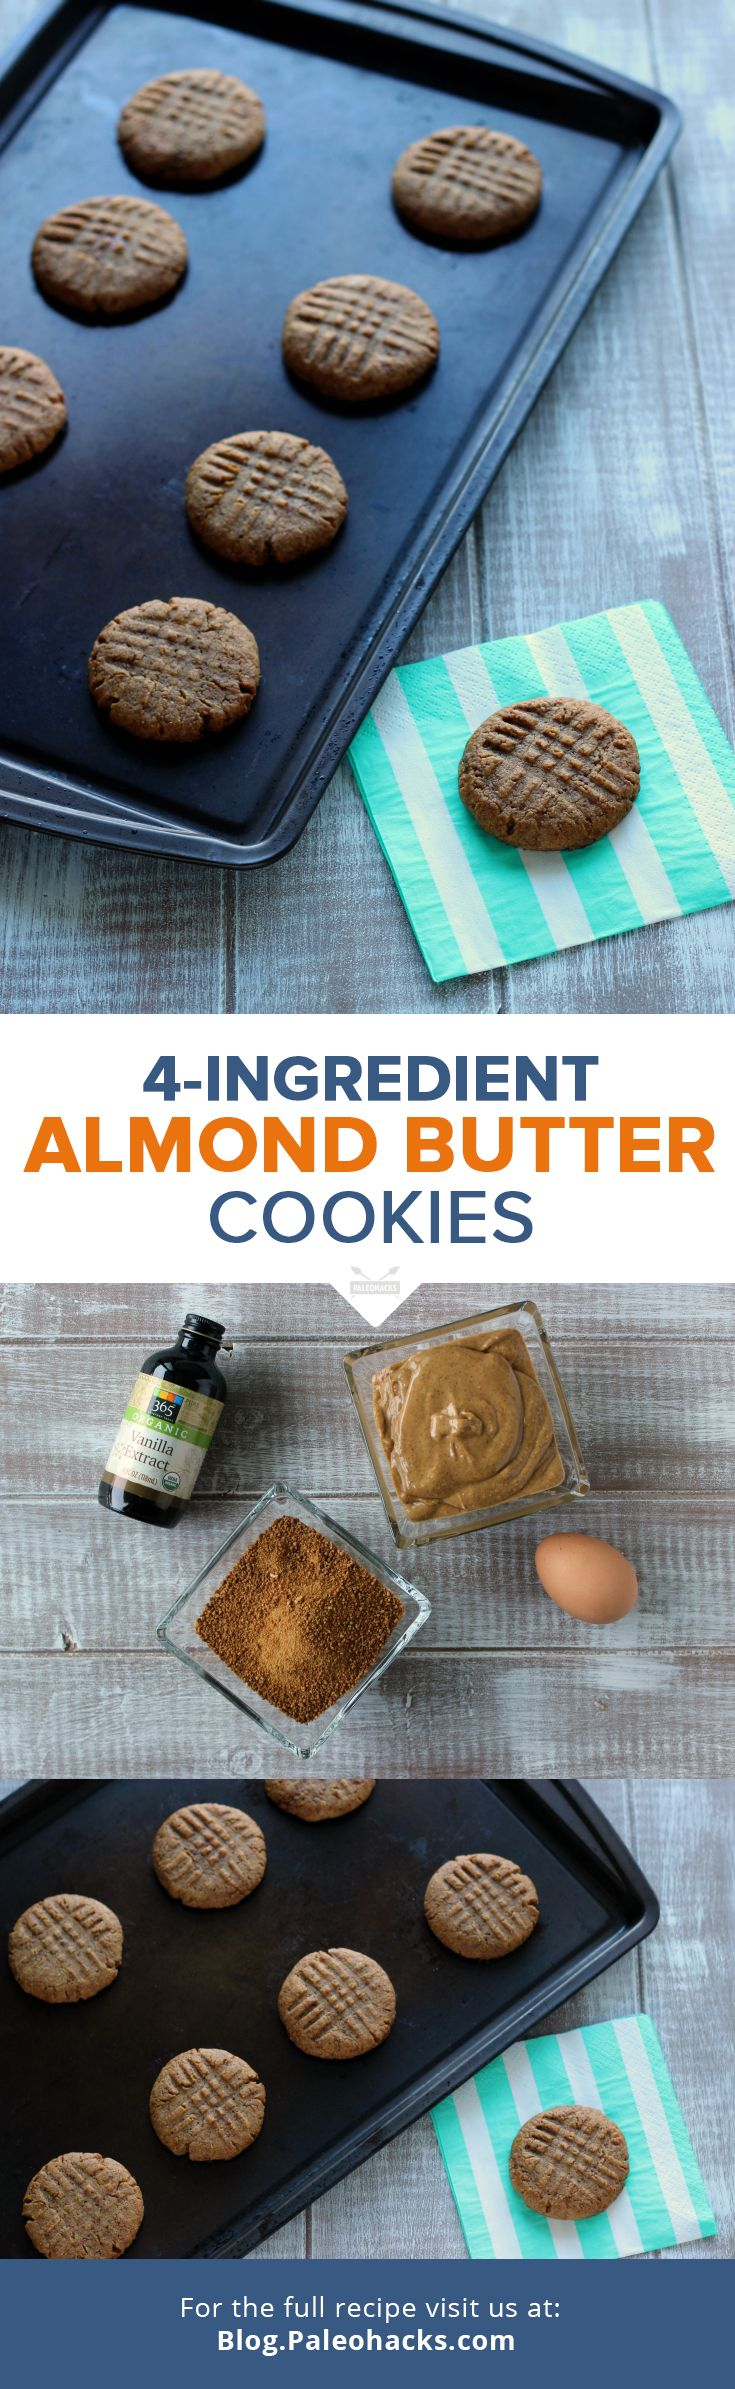 If you've been searching for the simplest, most delicious, gooey and chewy Paleo treat, look no further than these four-ingredient Almond Butter Cookies! For the full recipe come visit us at: http://paleo.co/ABCookie